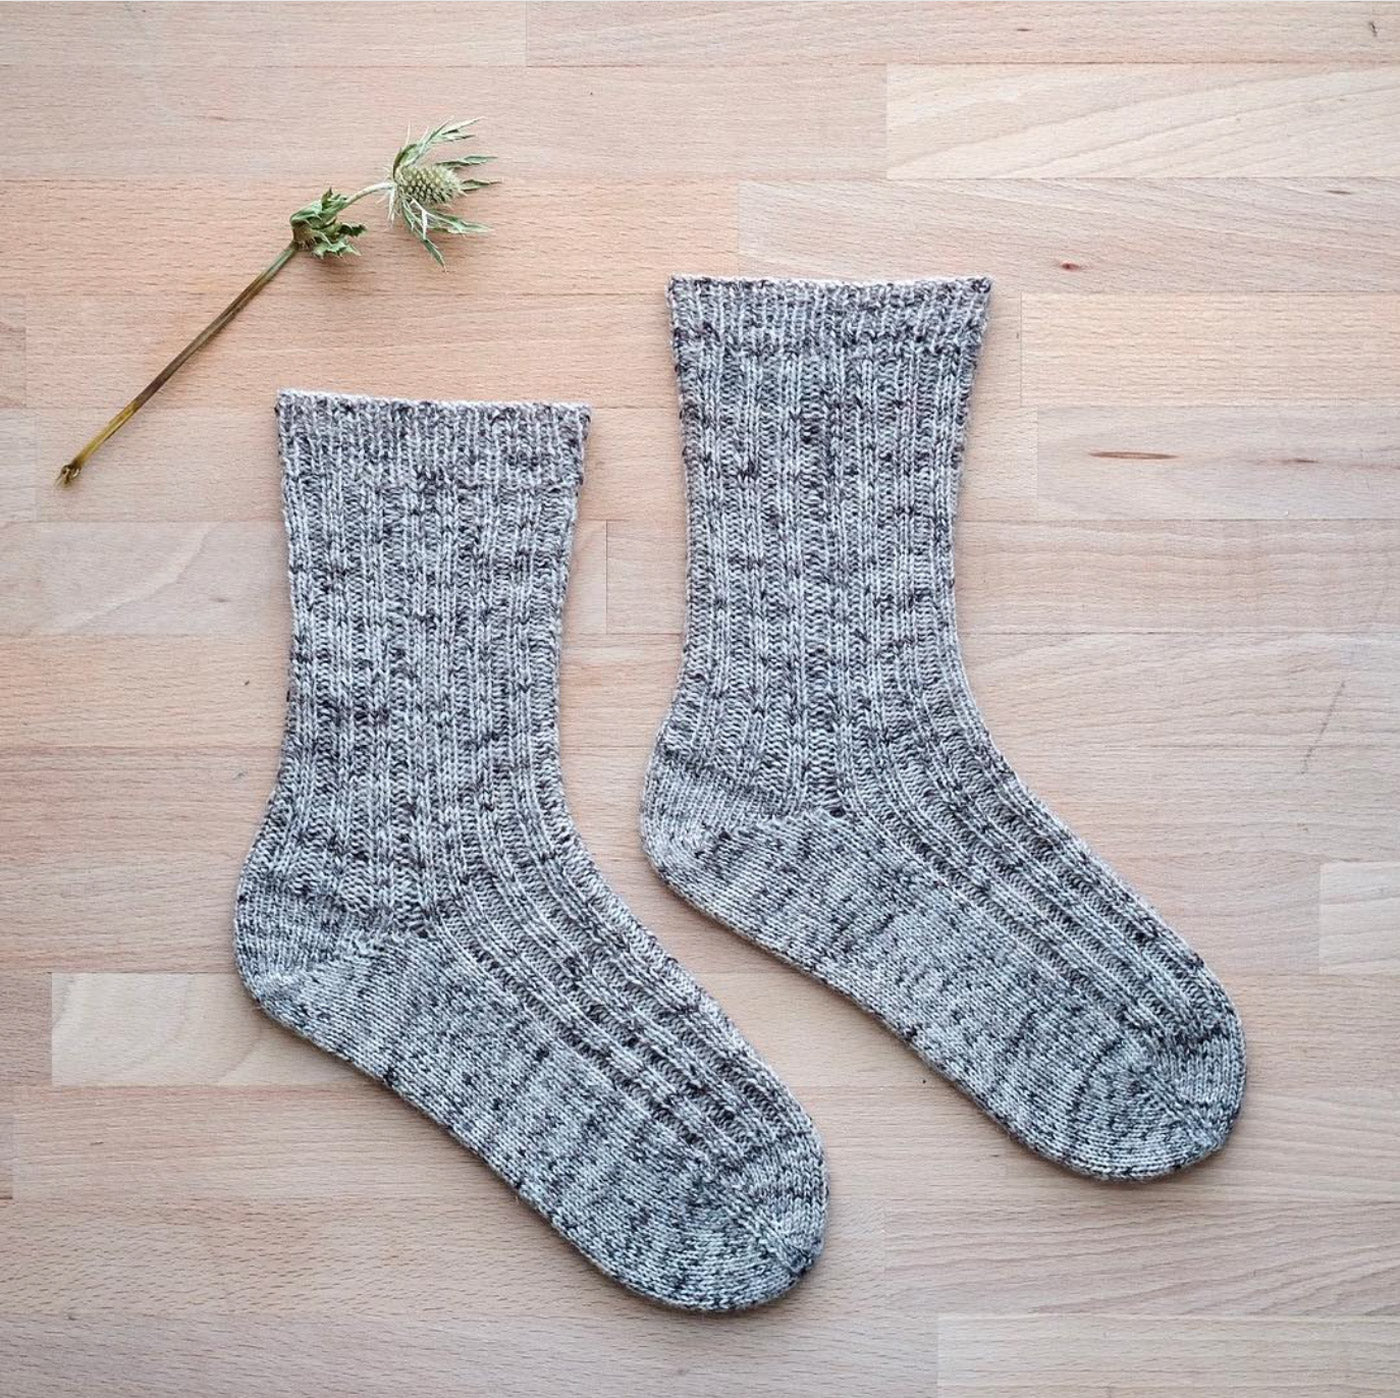 Basecamp Socks in Retrosaria Mondim